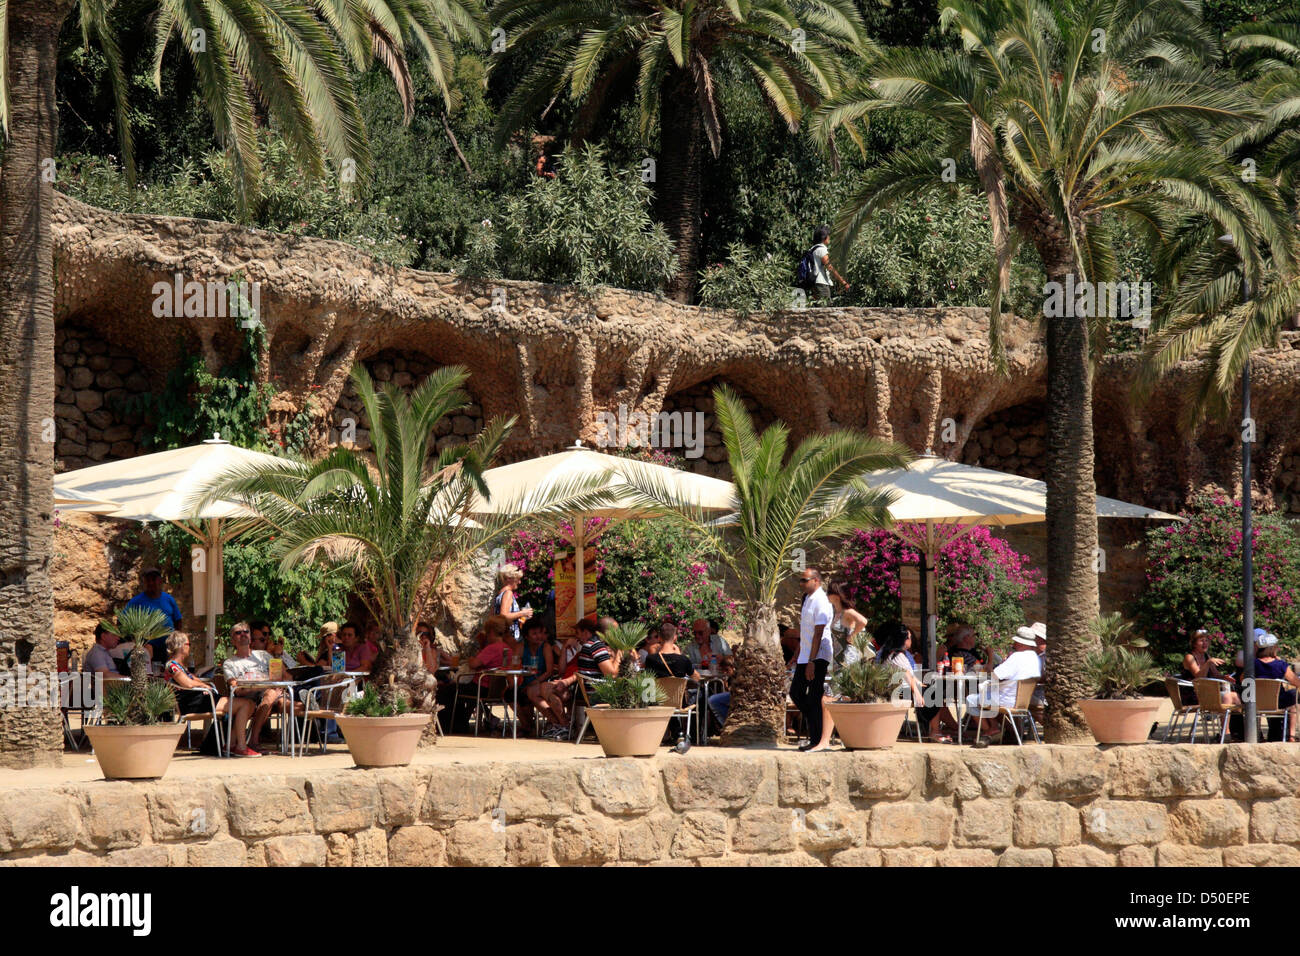 Parc Guell, Cafe, Barcelona, Spain - Stock Image